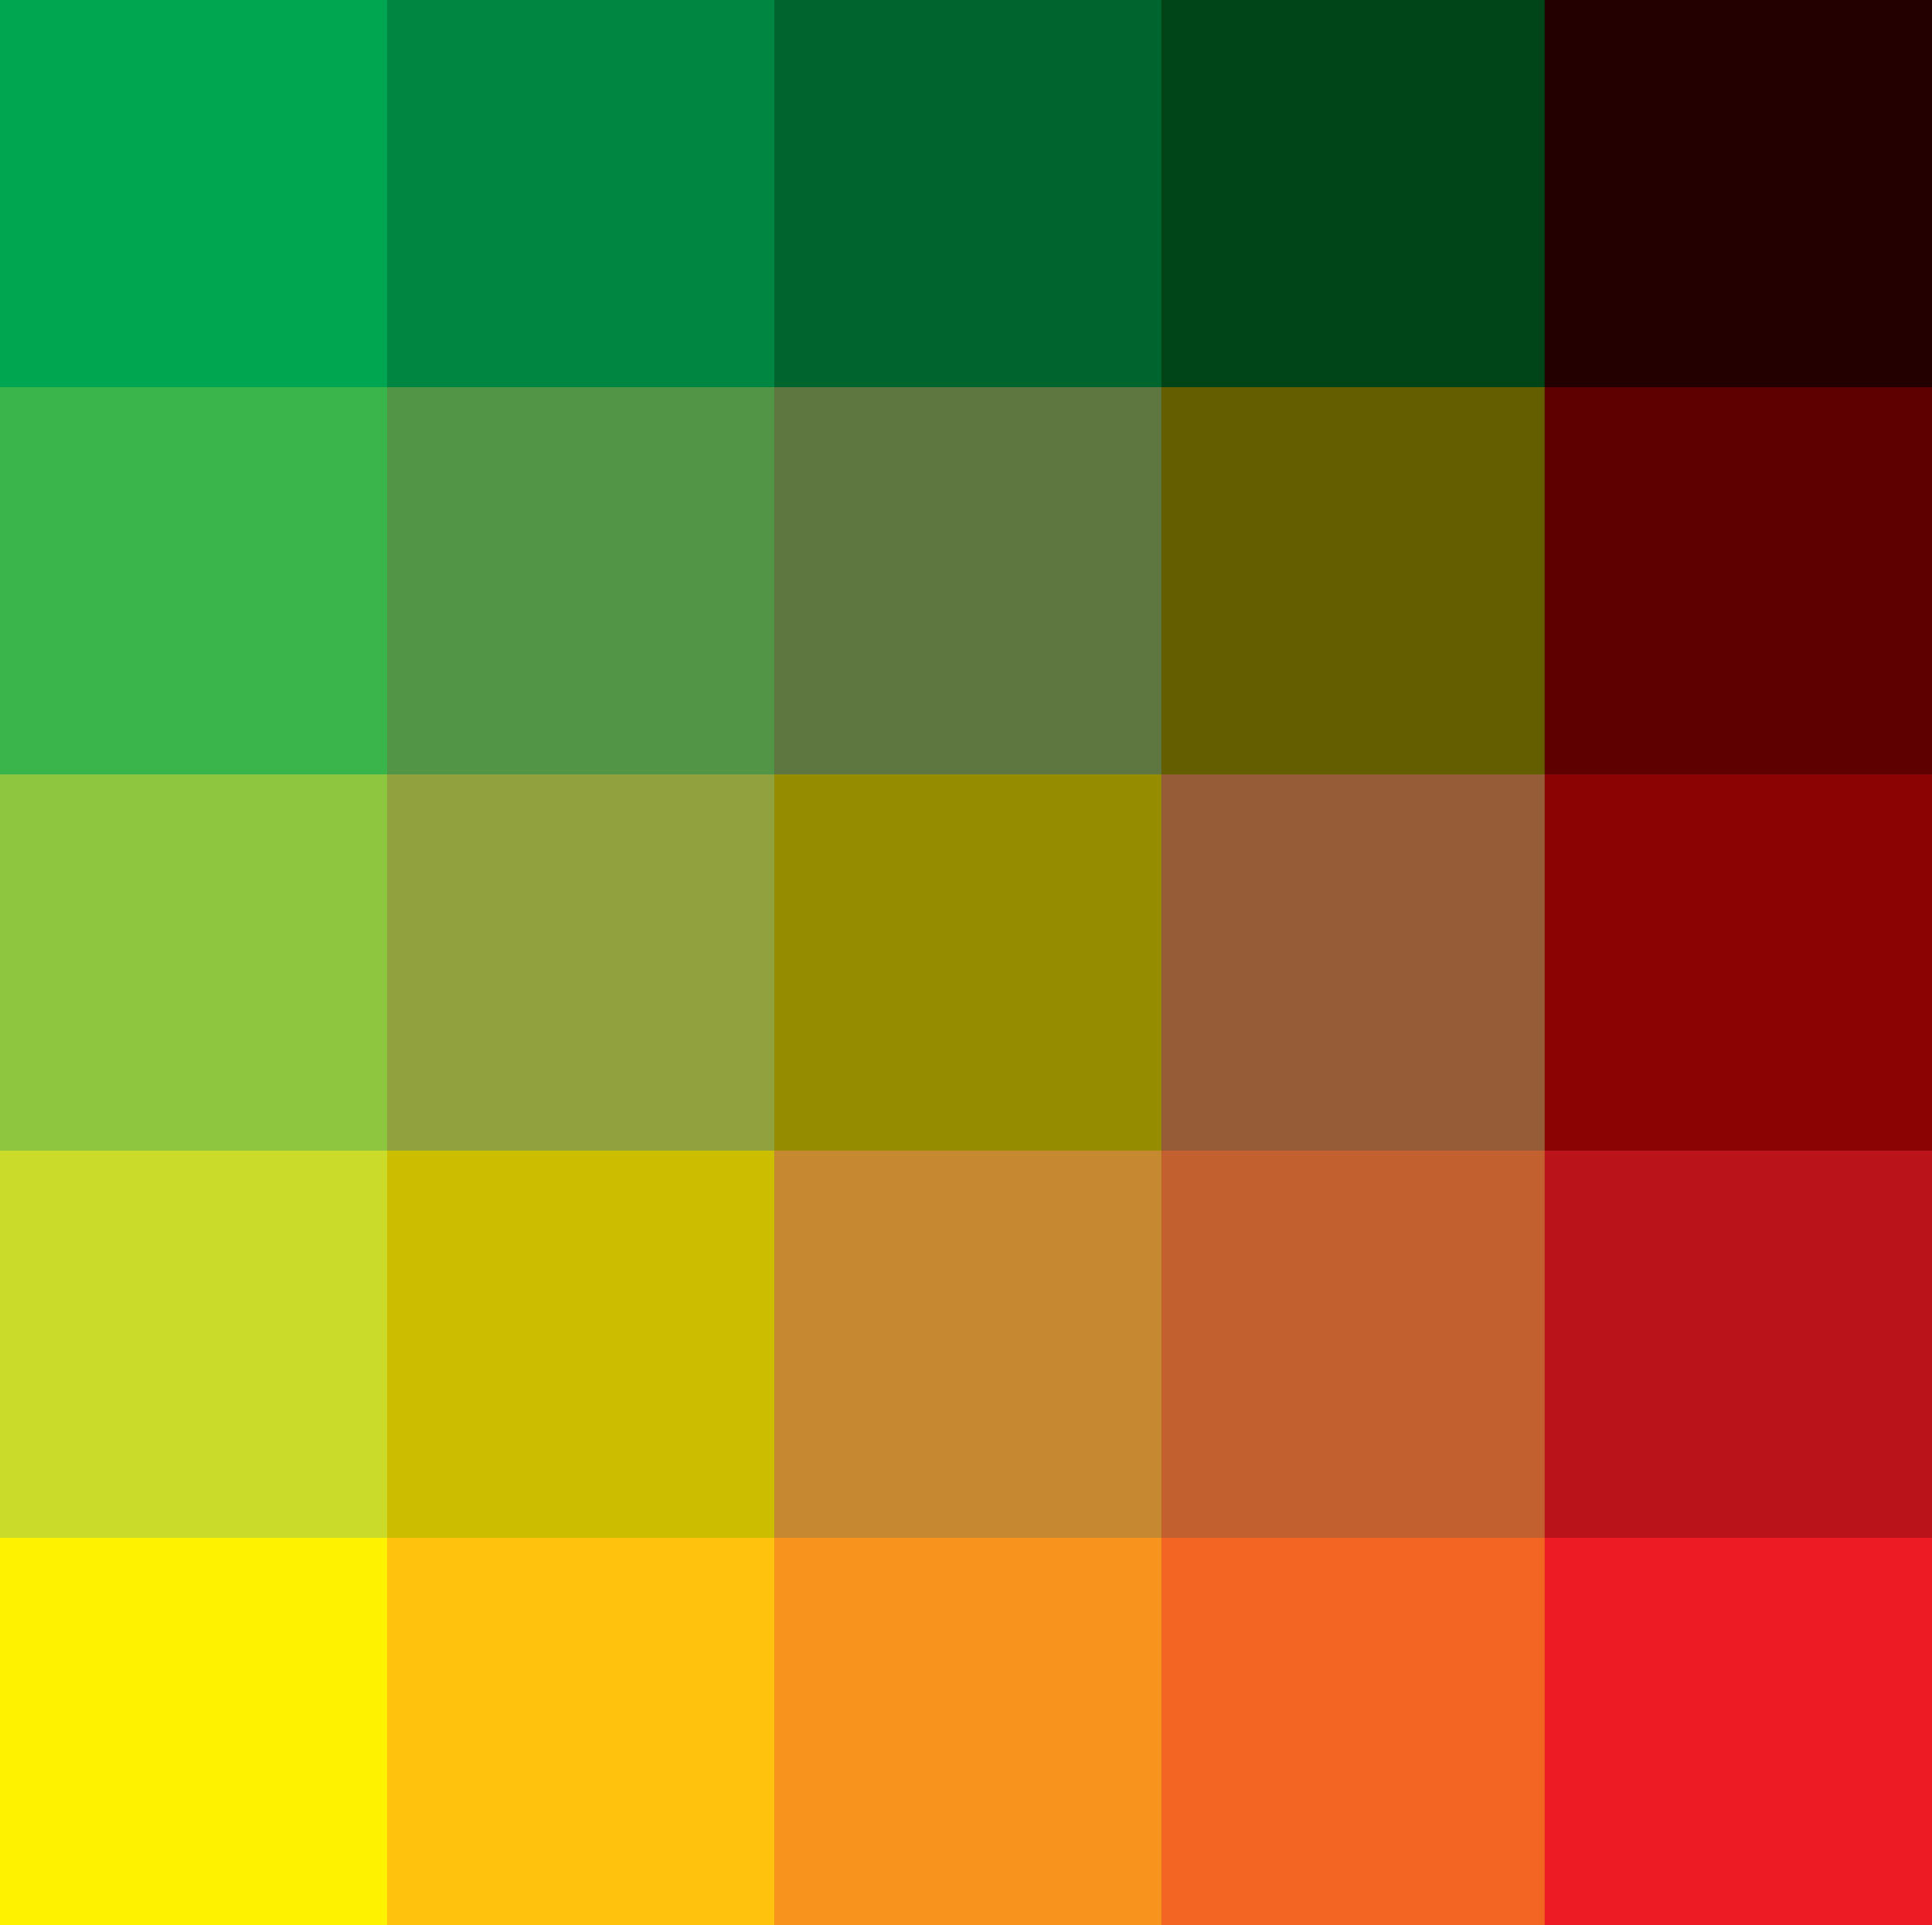 red-yellow-green